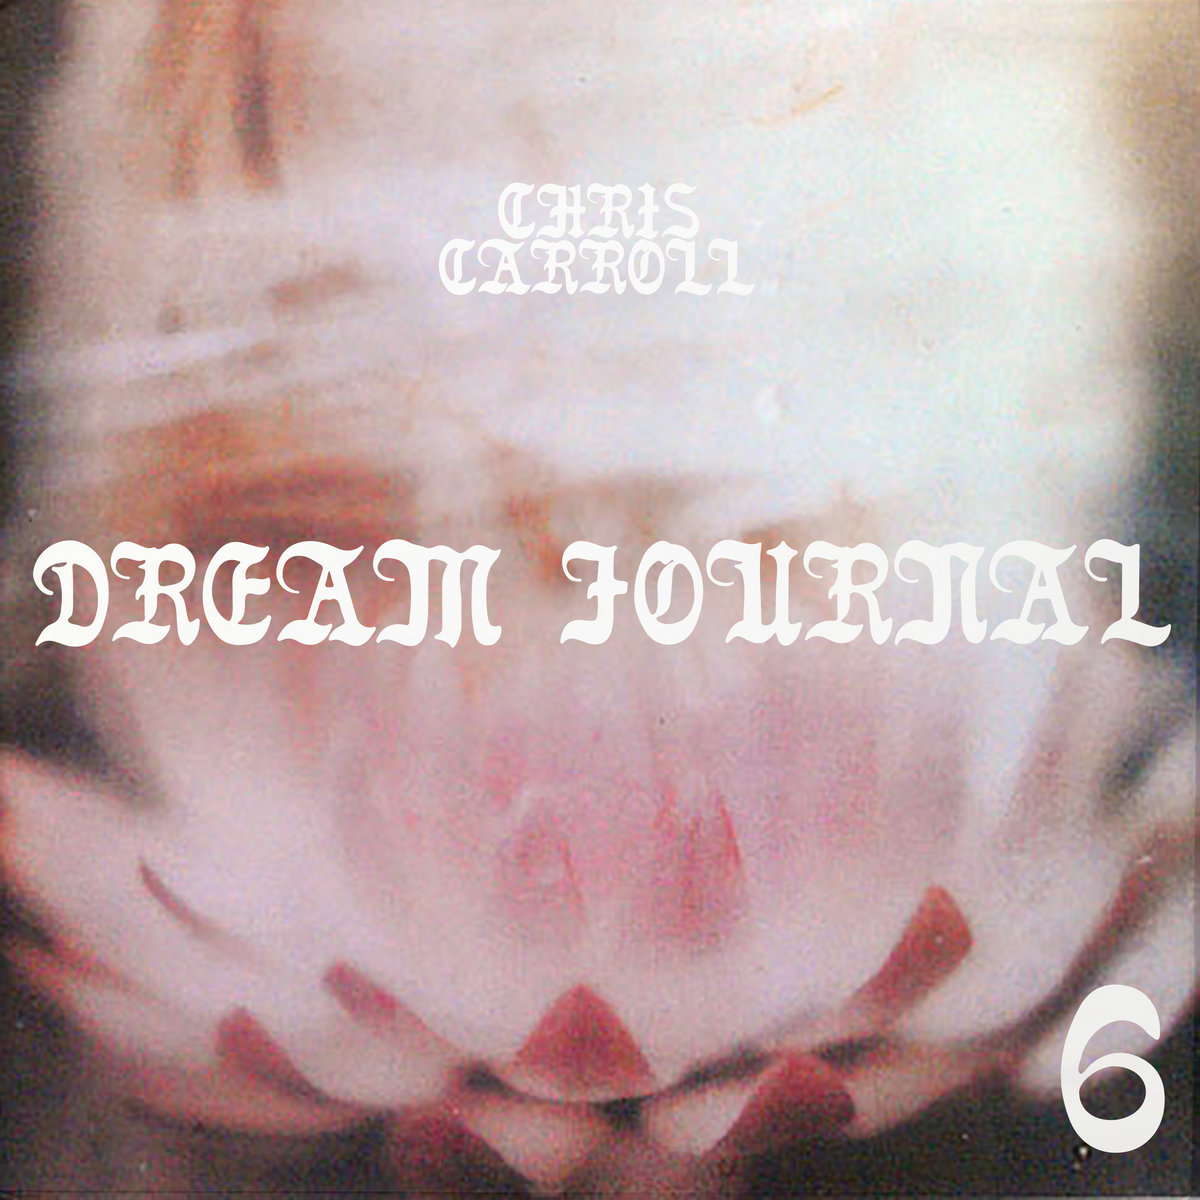 Chris Carroll-'Dream Journal, Vol. 6: Tiger Blood II' Album. 2020. Self-Released by Raindrop Sound.